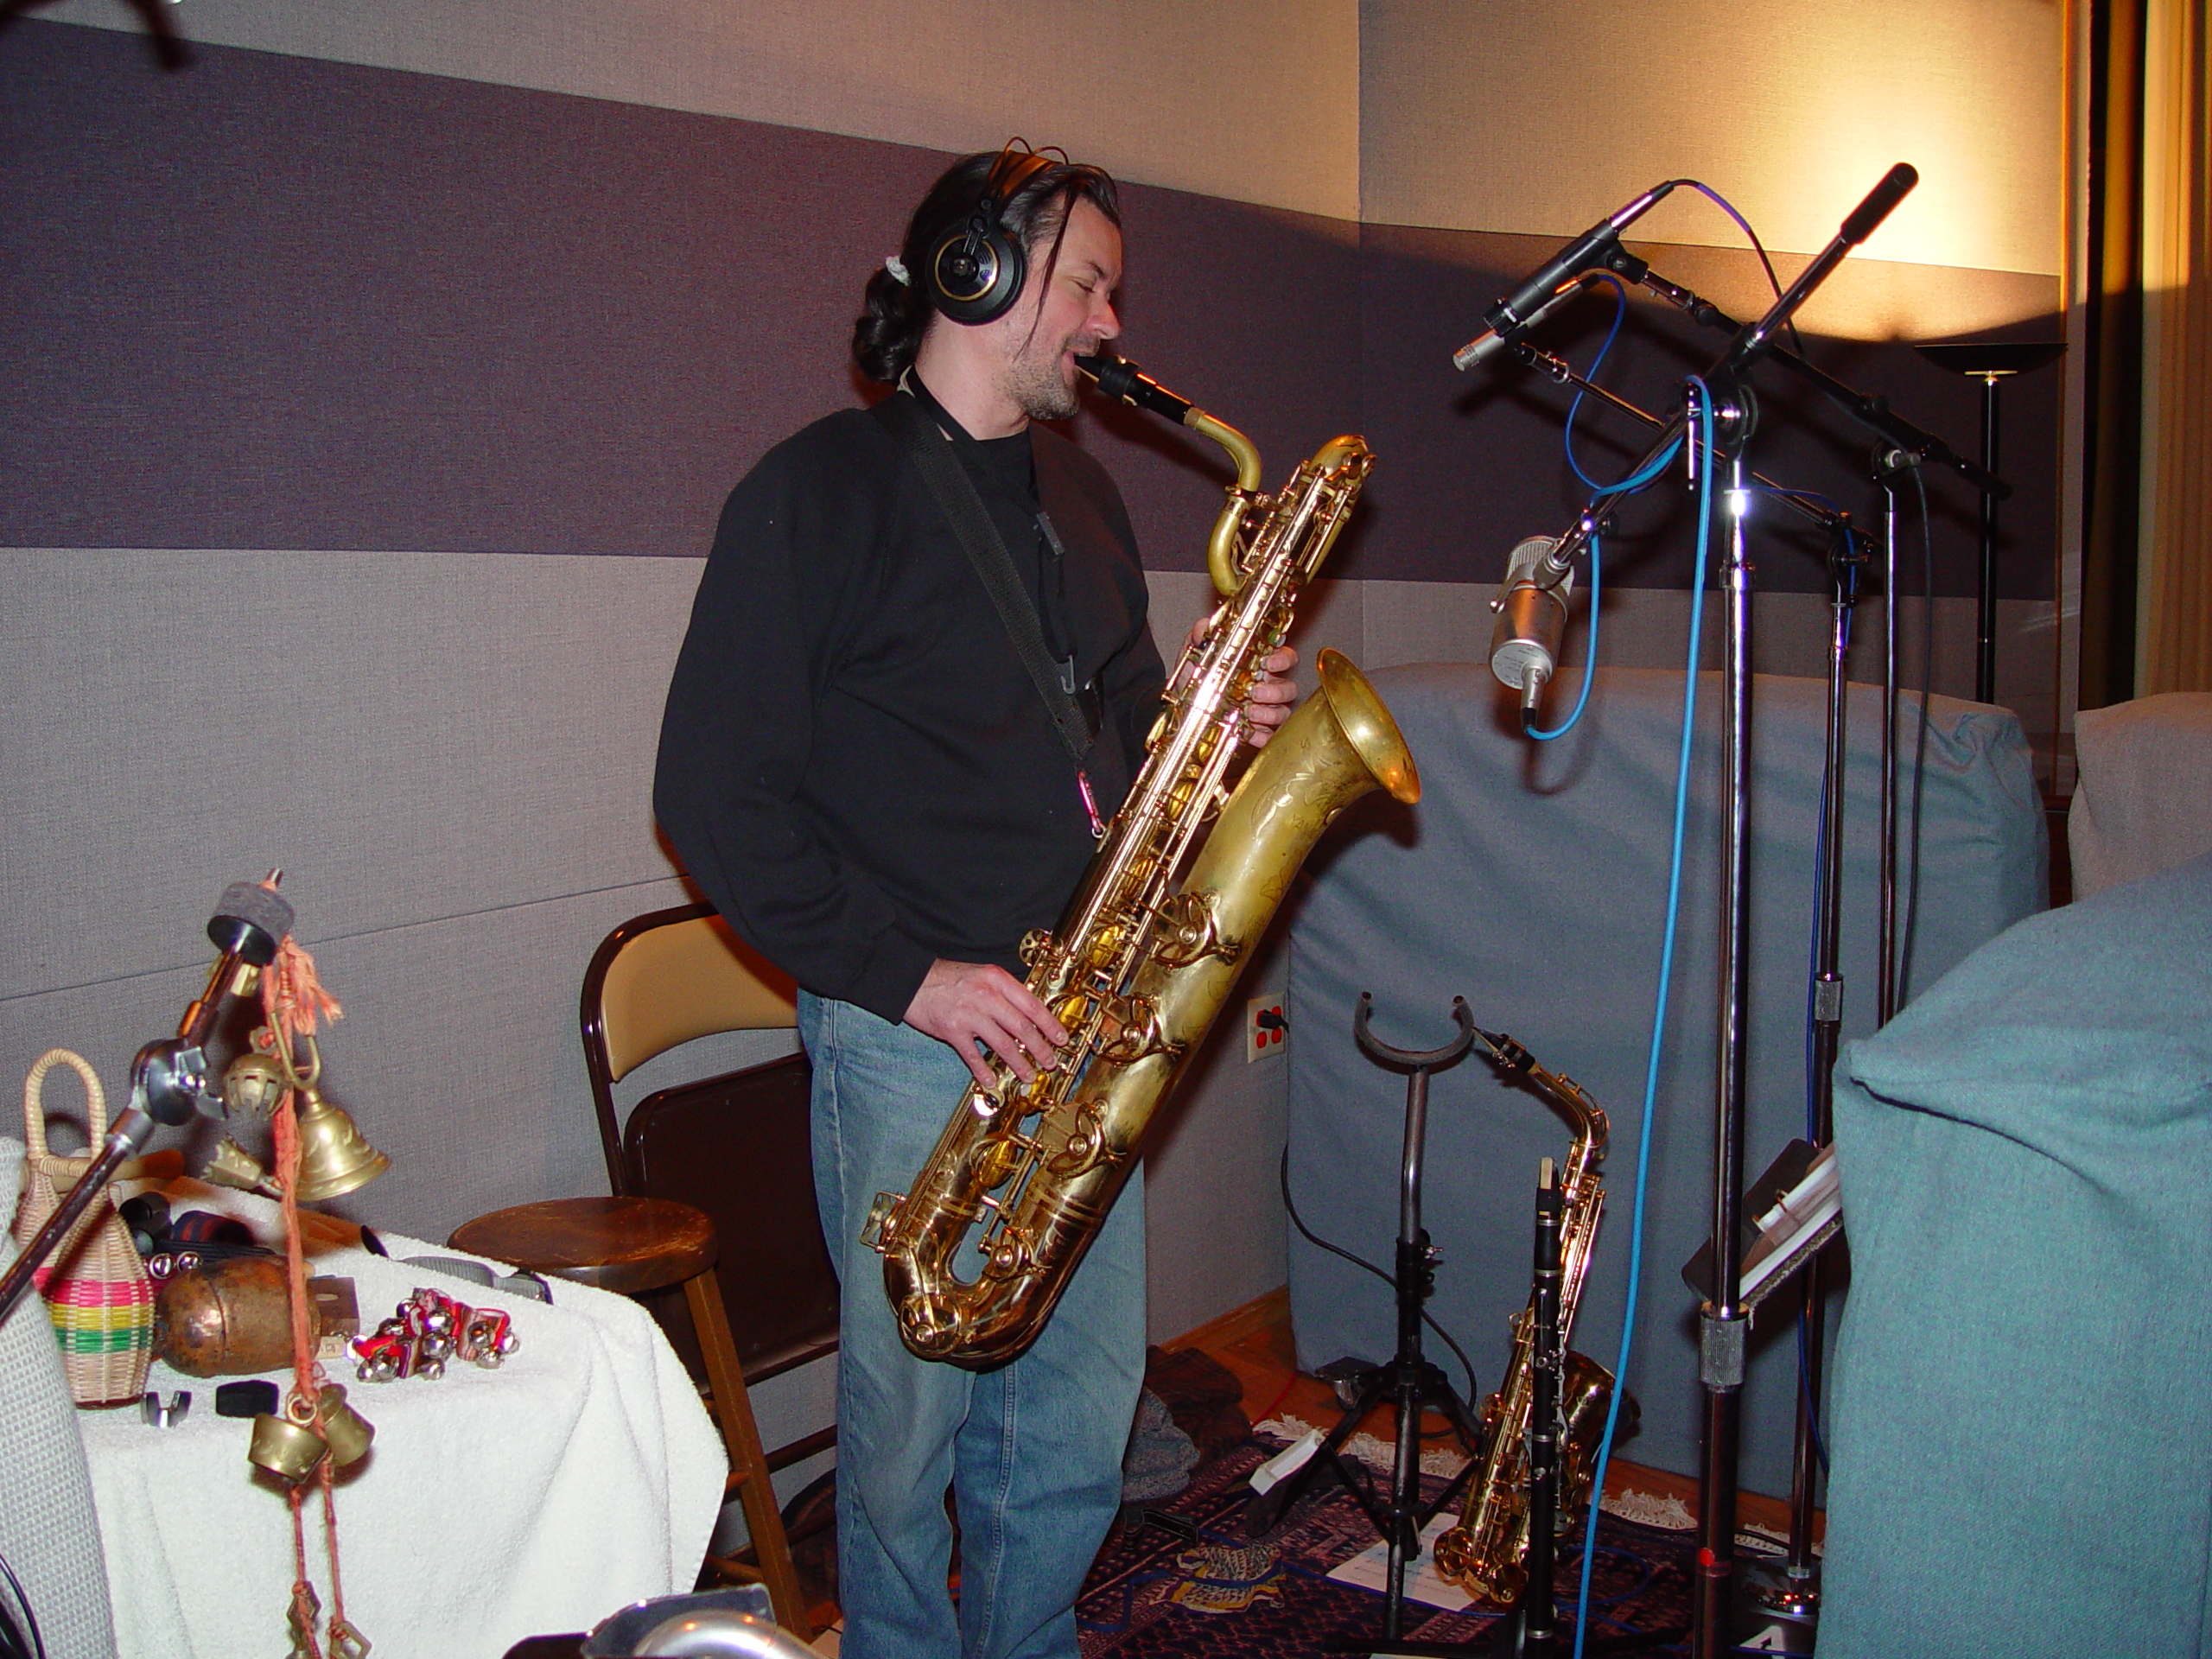 James DeJoie at Triad Studios